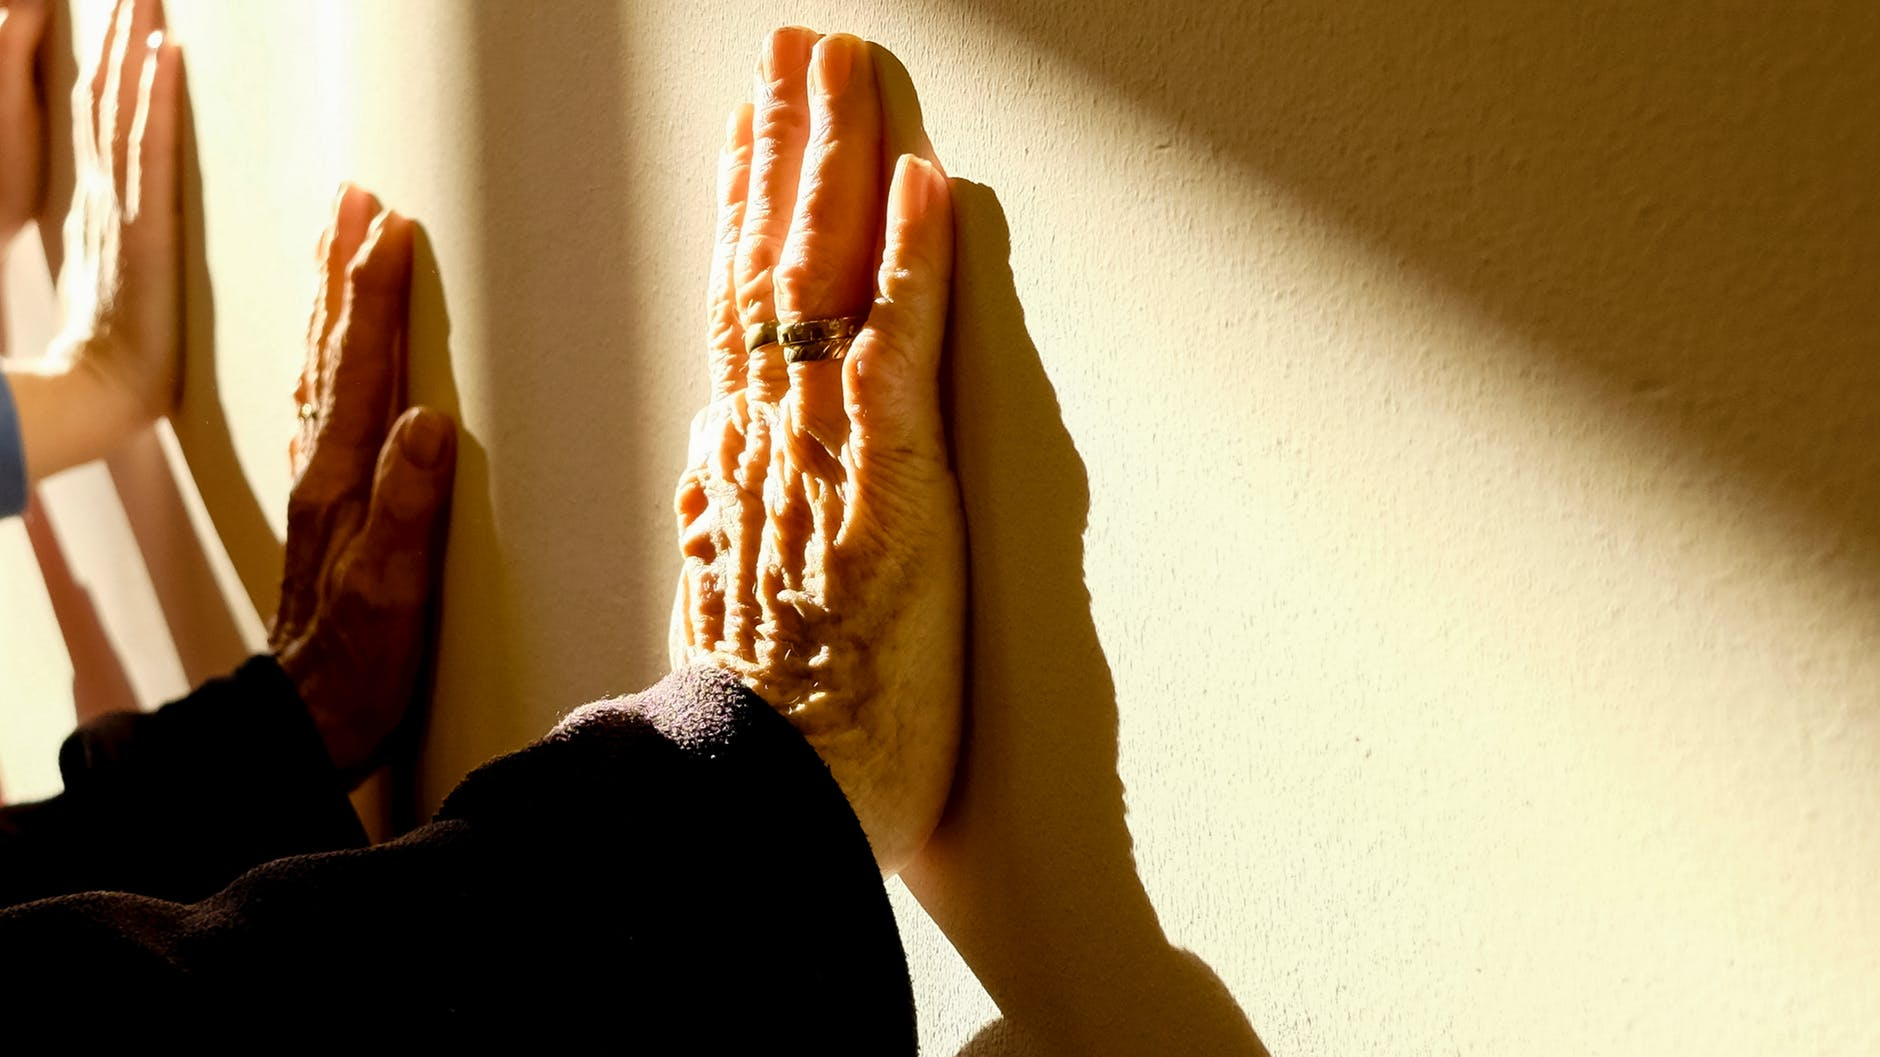 How to keep an eye on your caregiver